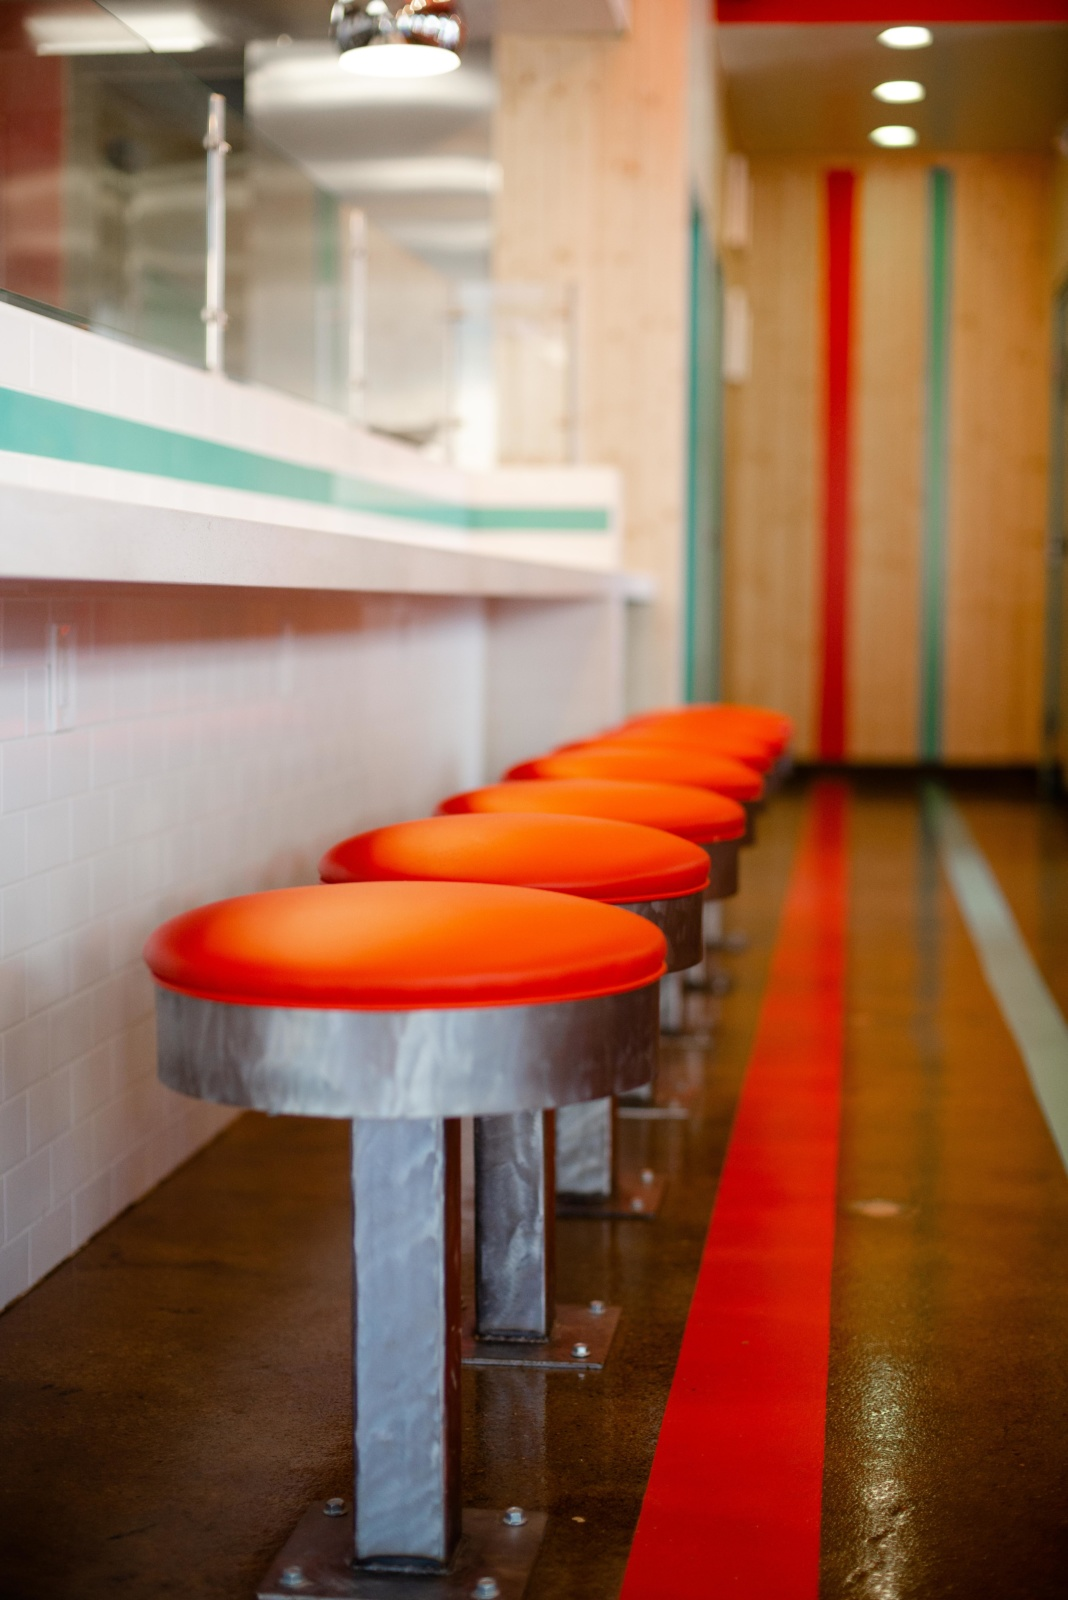 A detailed look at the retro metal and red vinyl lunch counter stools.